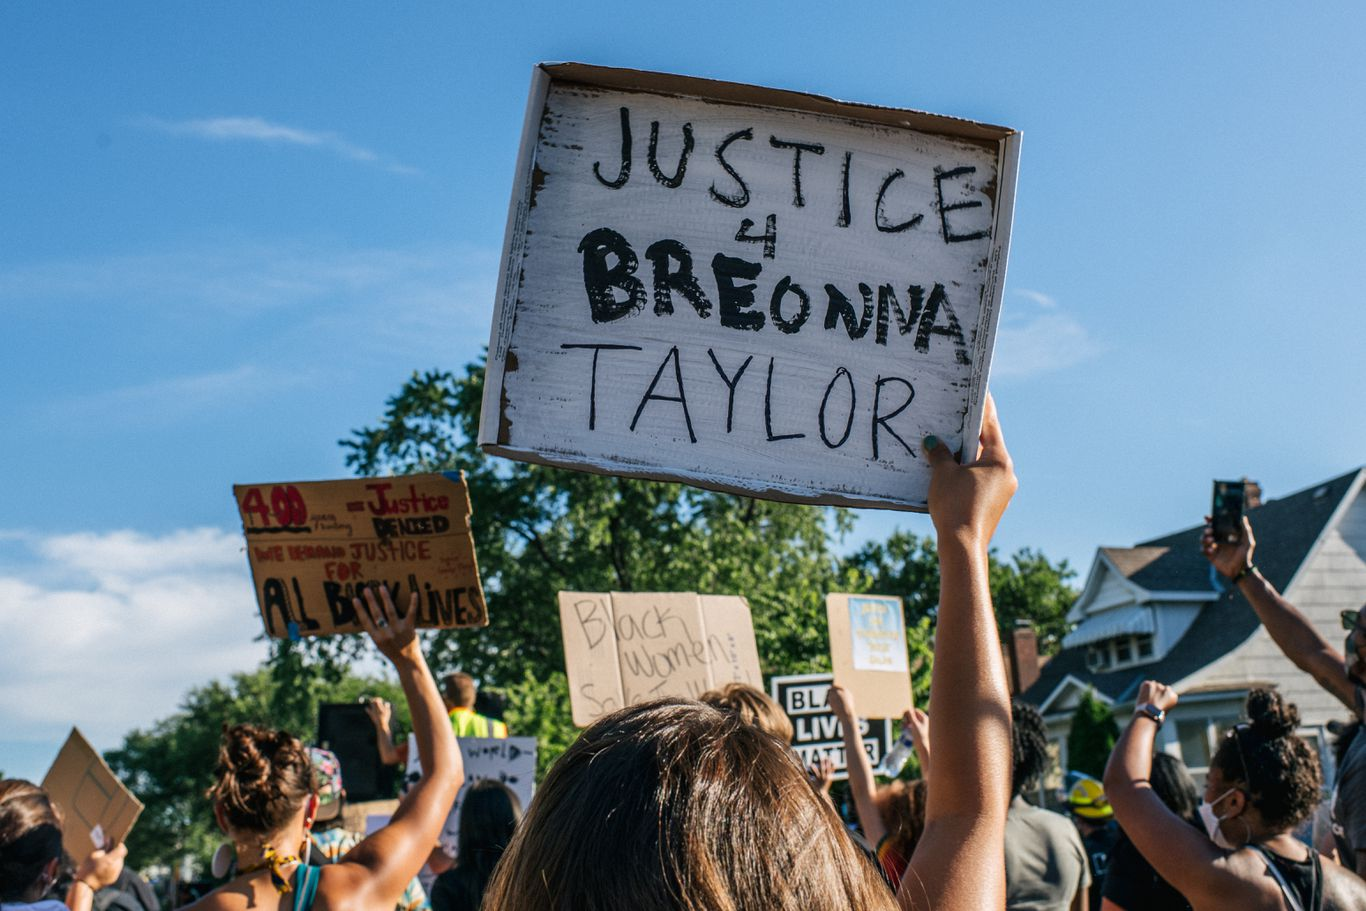 Shots fired into crowd at Breonna Taylor protest leaves 1 dead in Kentucky park thumbnail